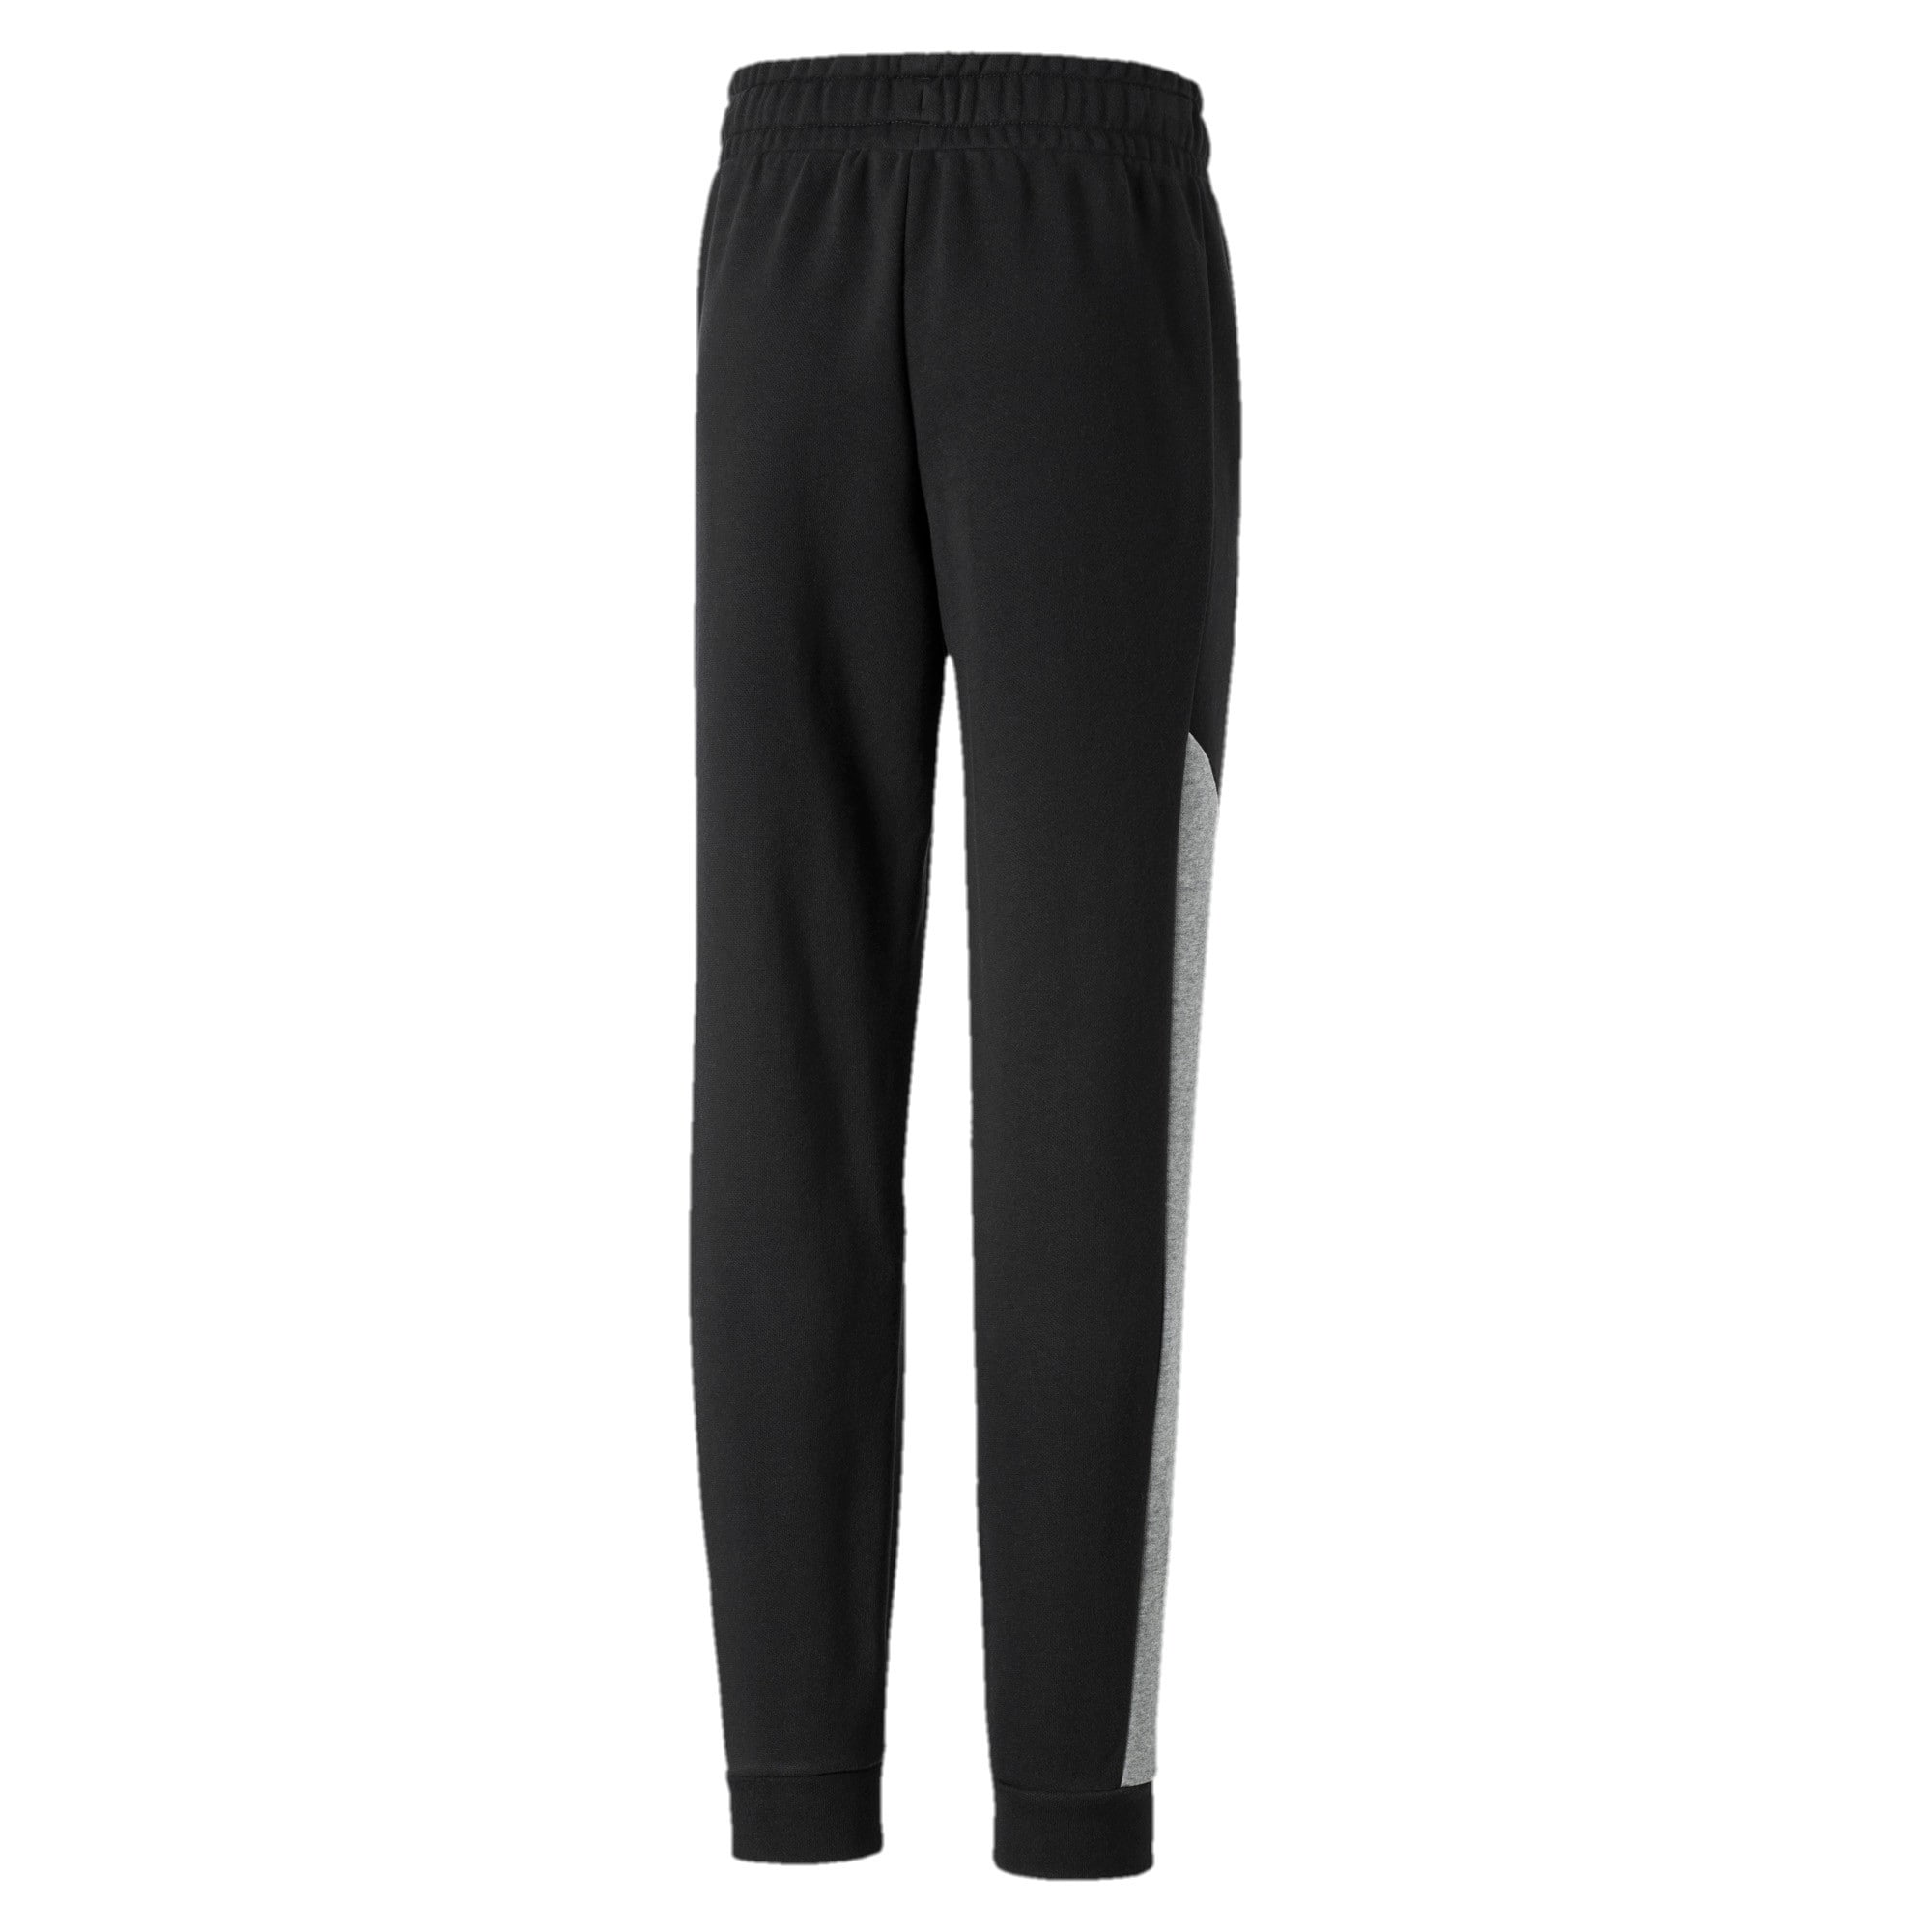 Alpha Knitted Boys' Sweatpants, Puma Black, large-IND